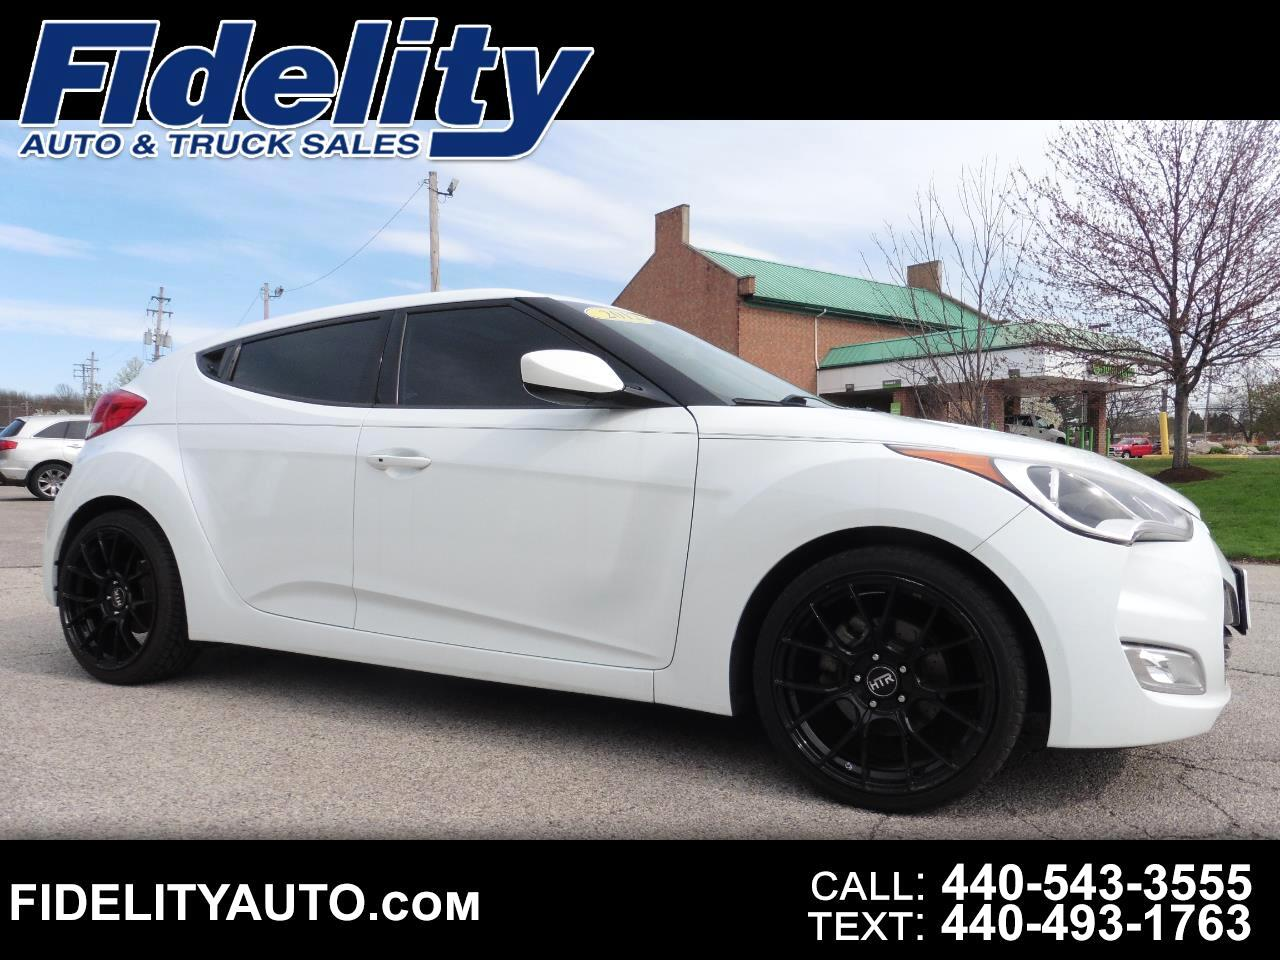 Hyundai Veloster 3dr Cpe Auto w/Red Int 2012